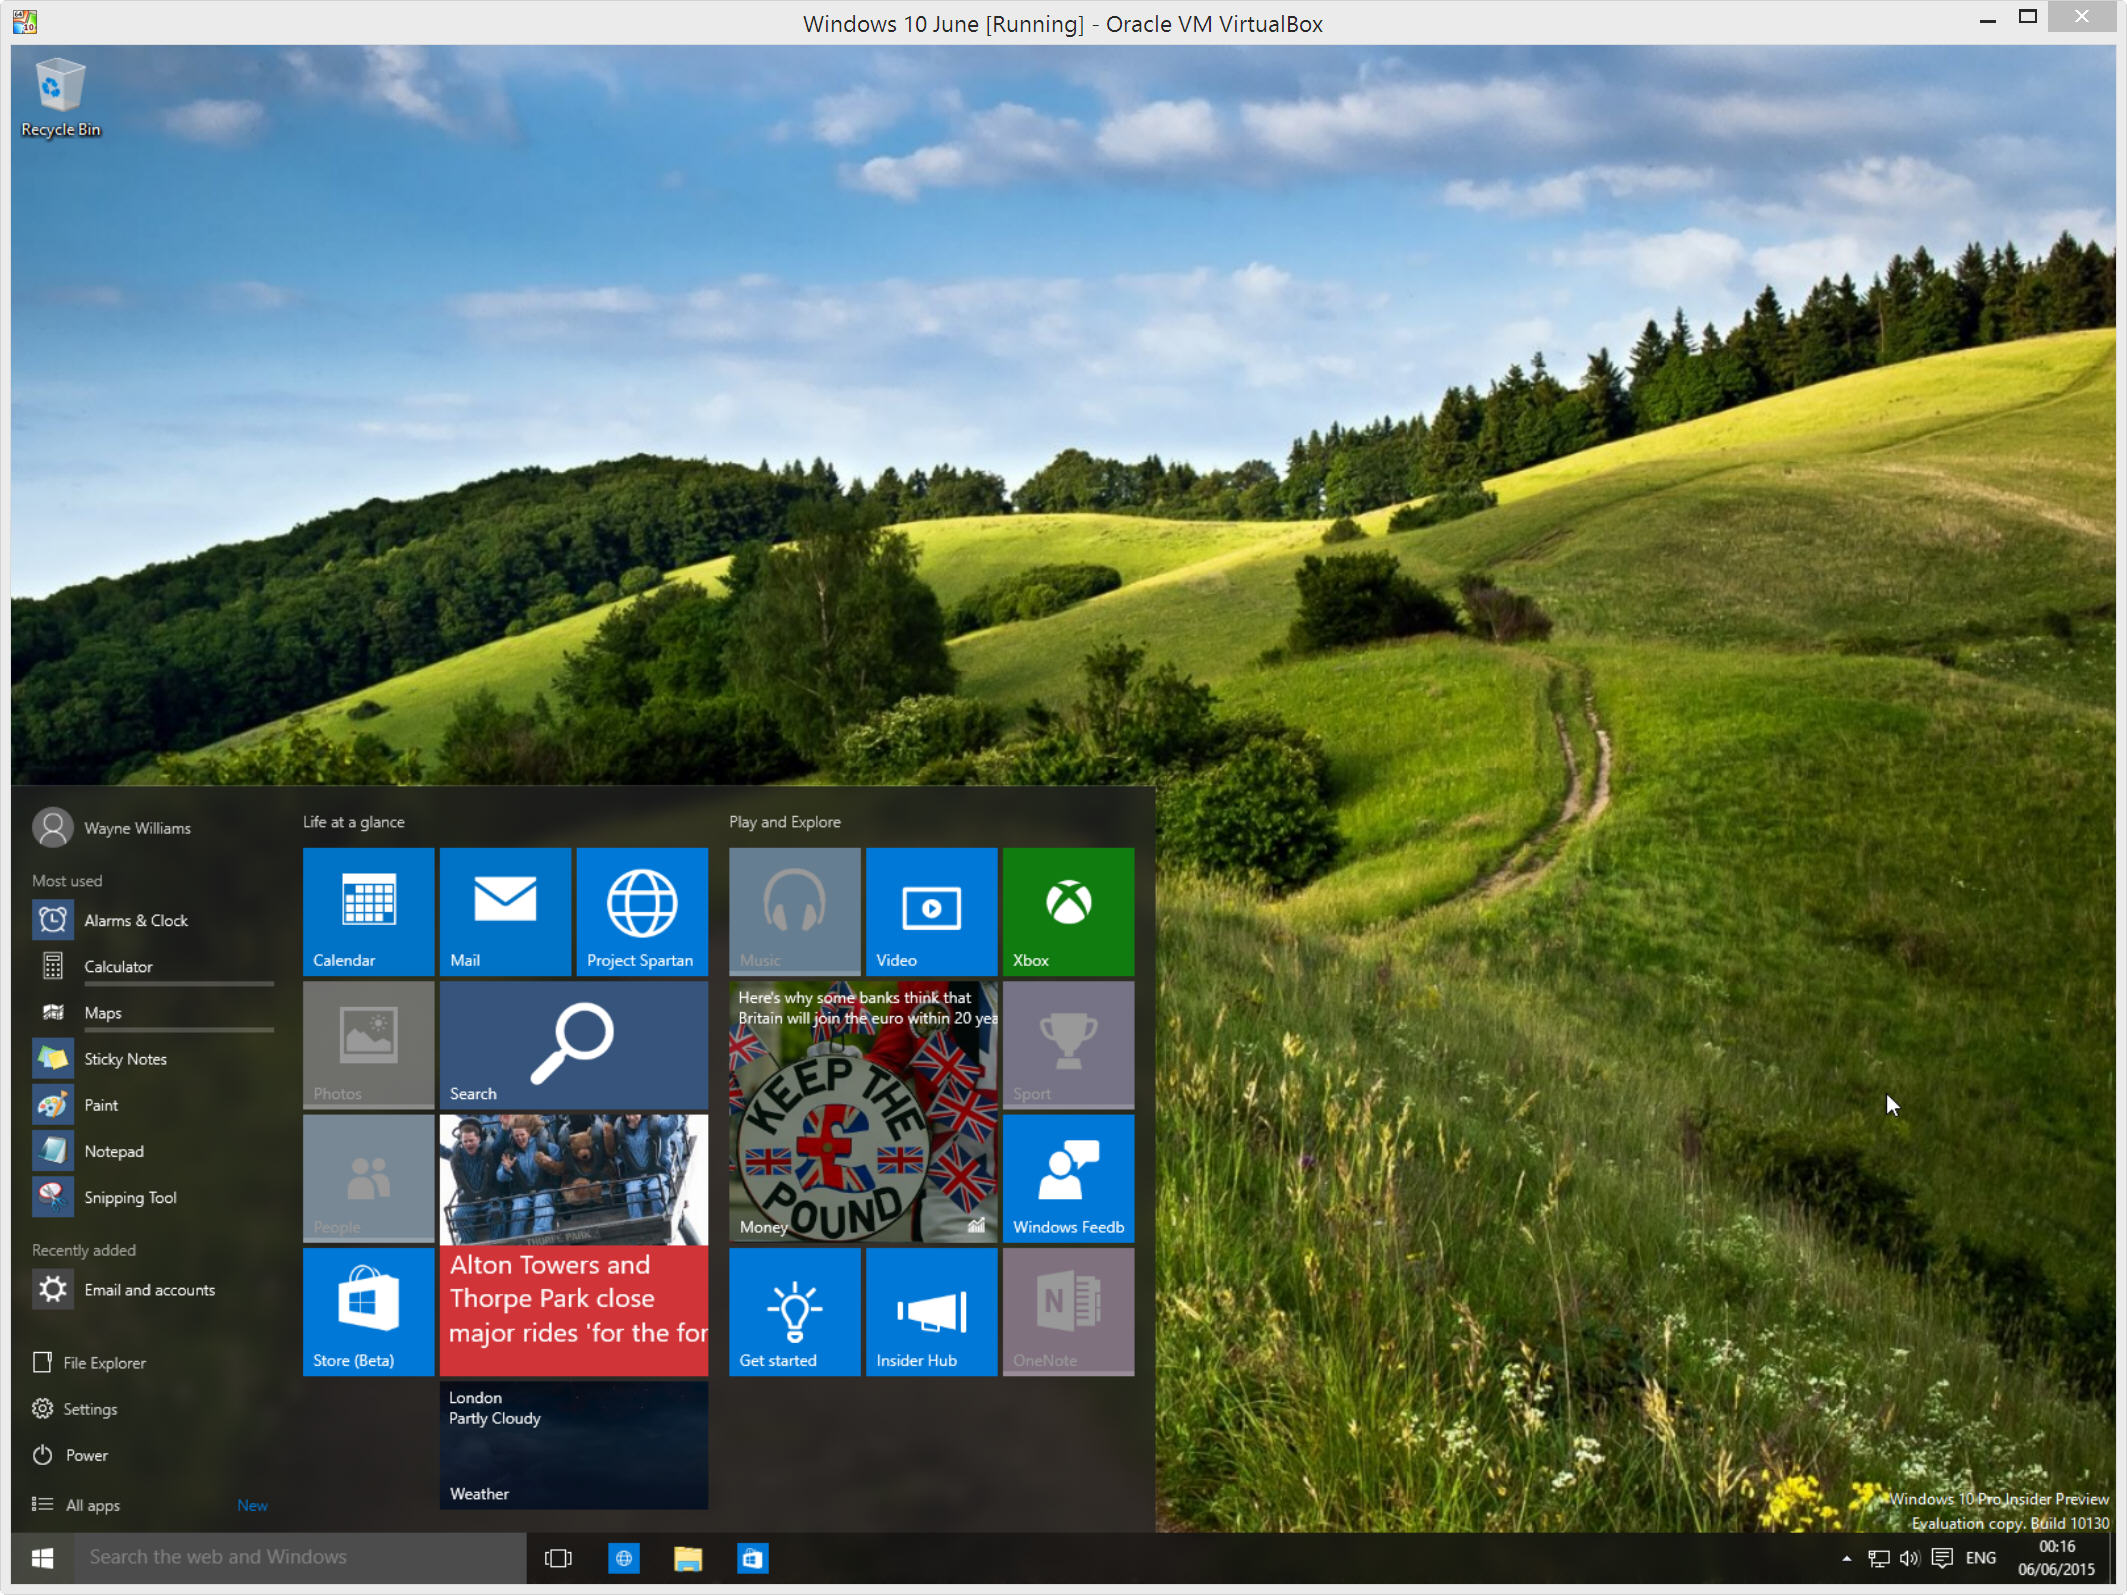 How to install Windows 10 Insider Preview on Oracle VirtualBox [Updated]